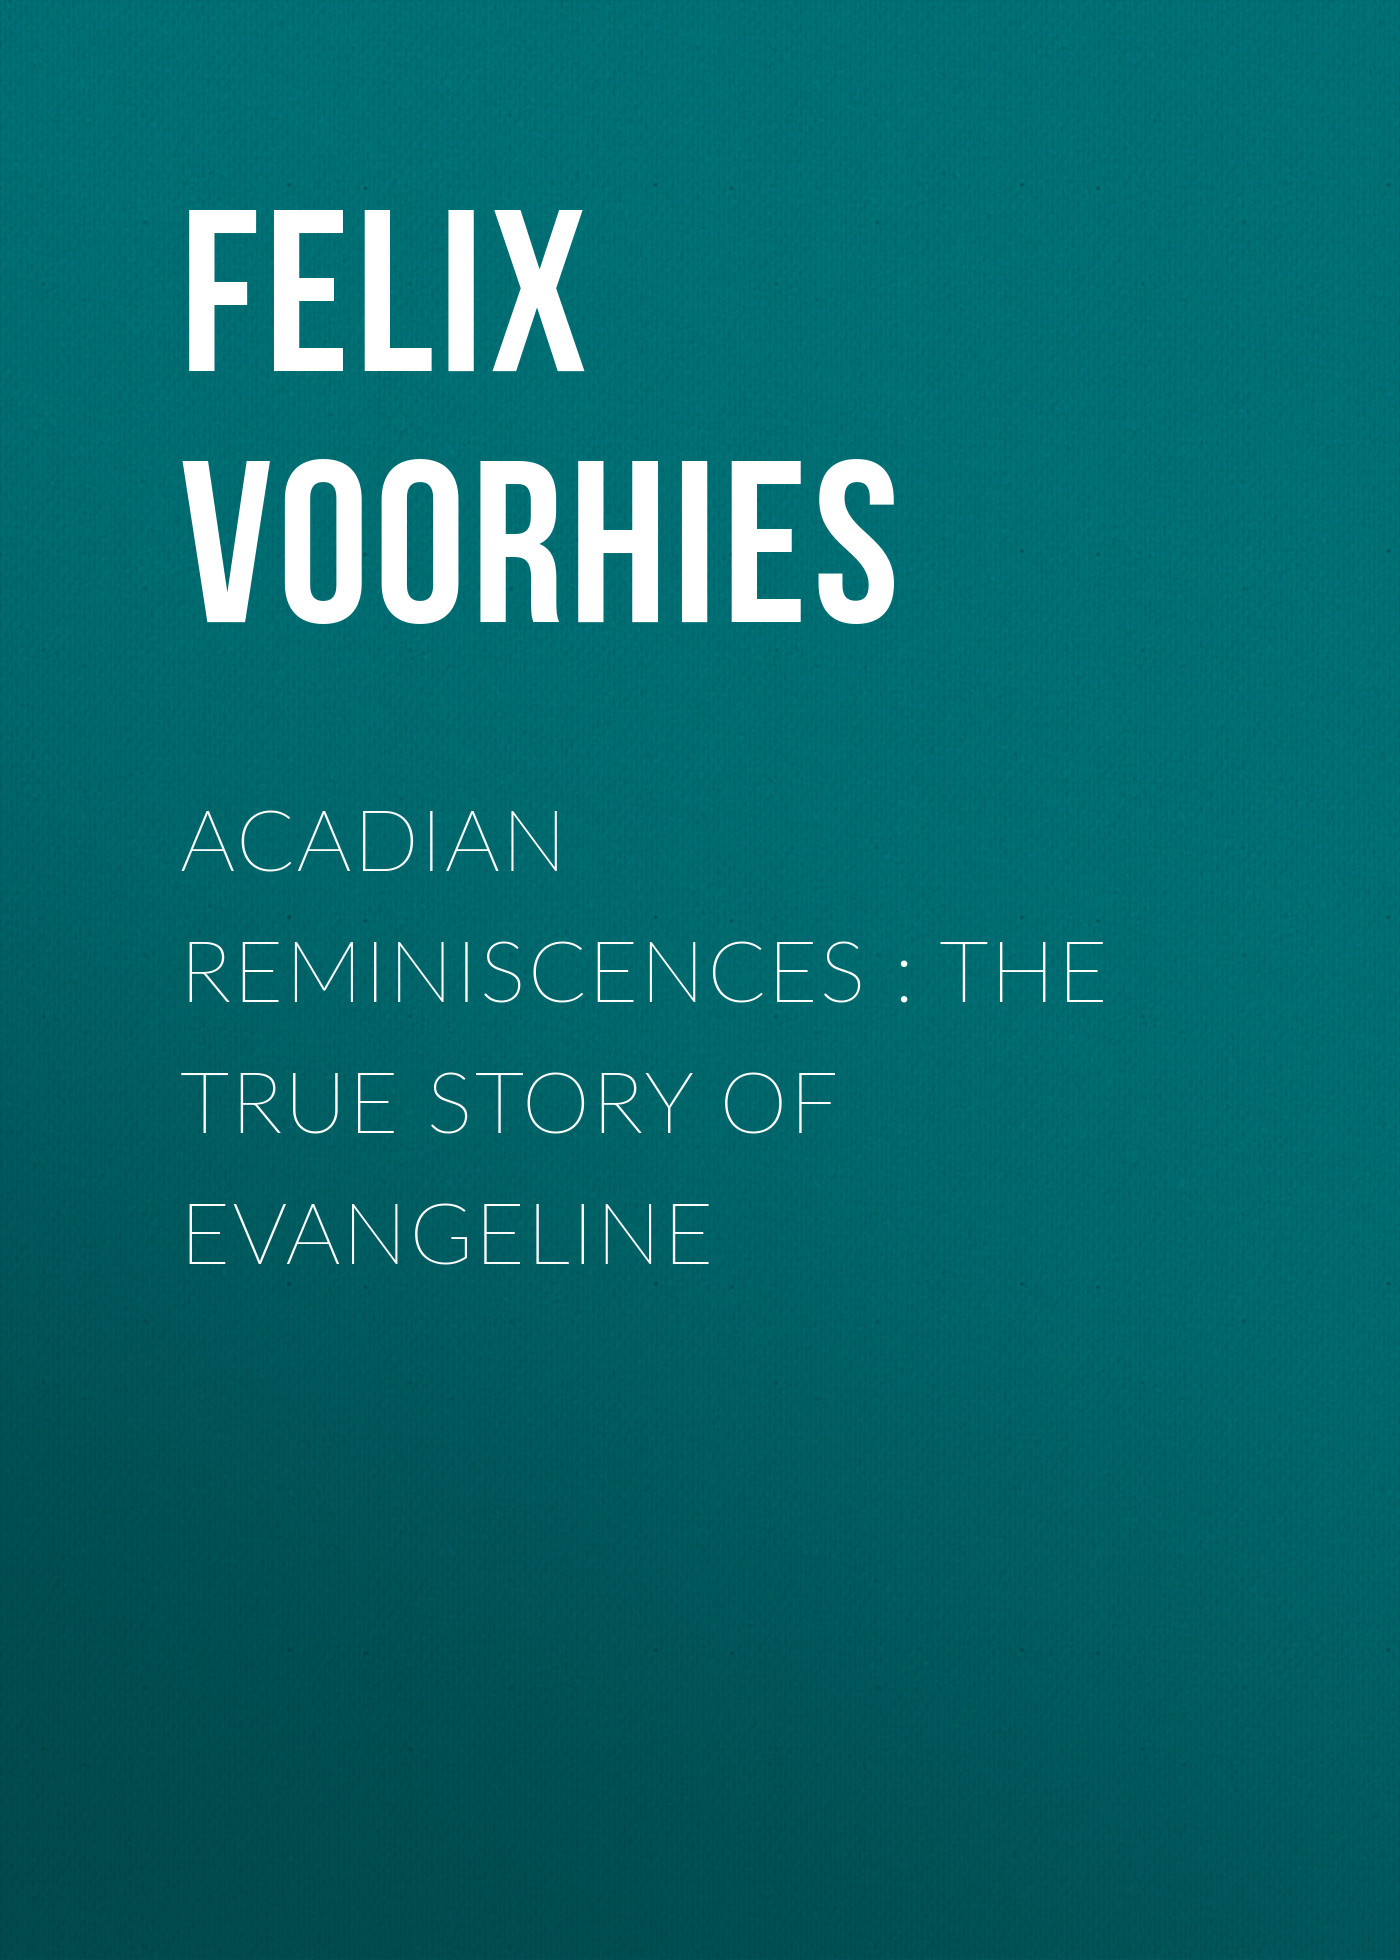 Felix Voorhies Acadian Reminiscences : The True Story of Evangeline a dubuque reminiscences d operas italiens